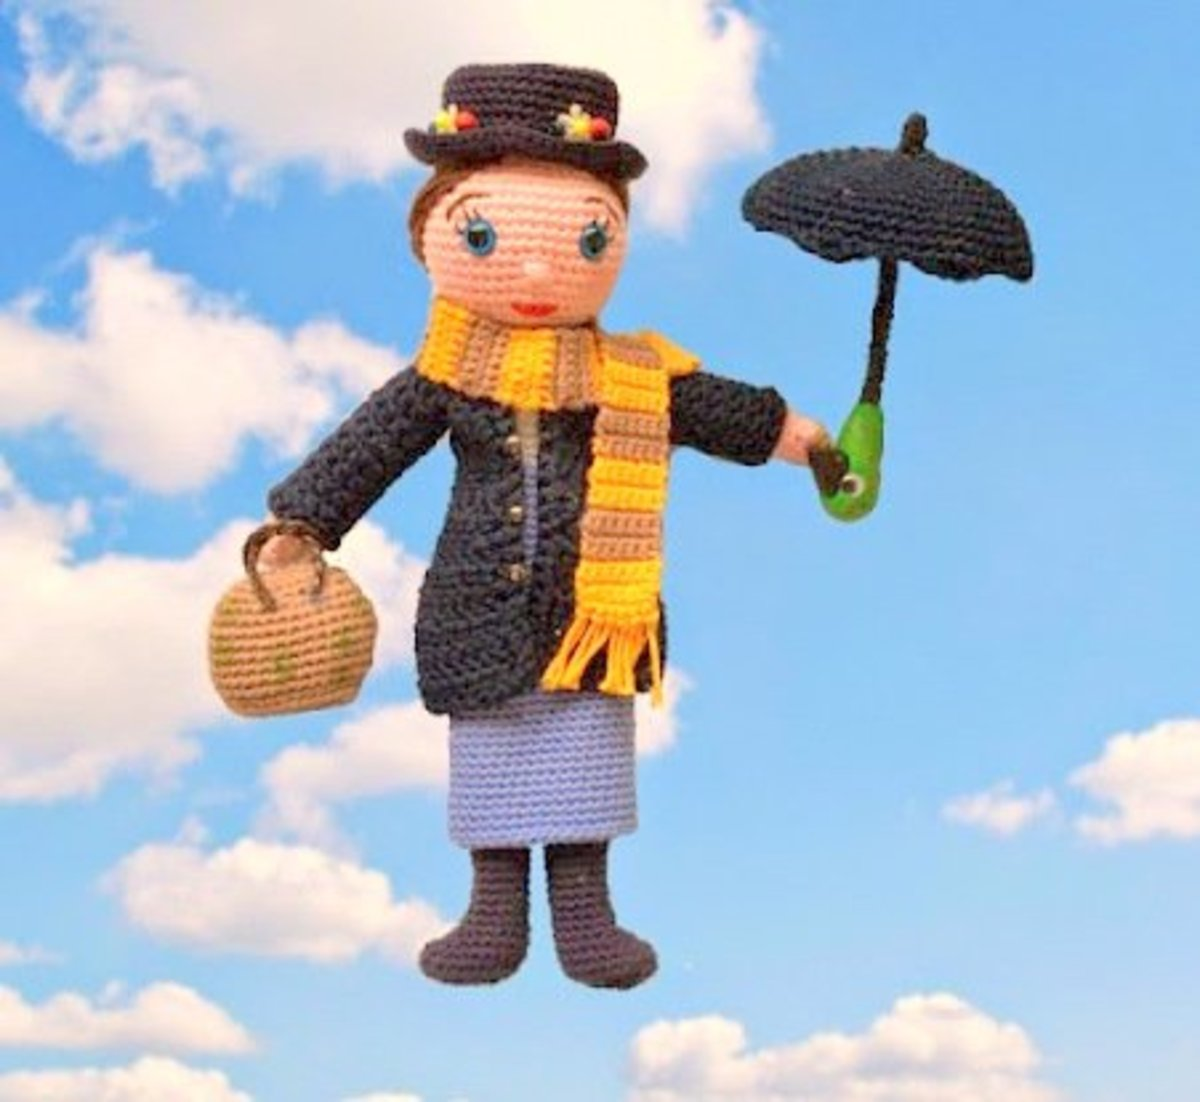 Mary Poppins Amigurumi Doll Free Crochet Pattern Hubpages